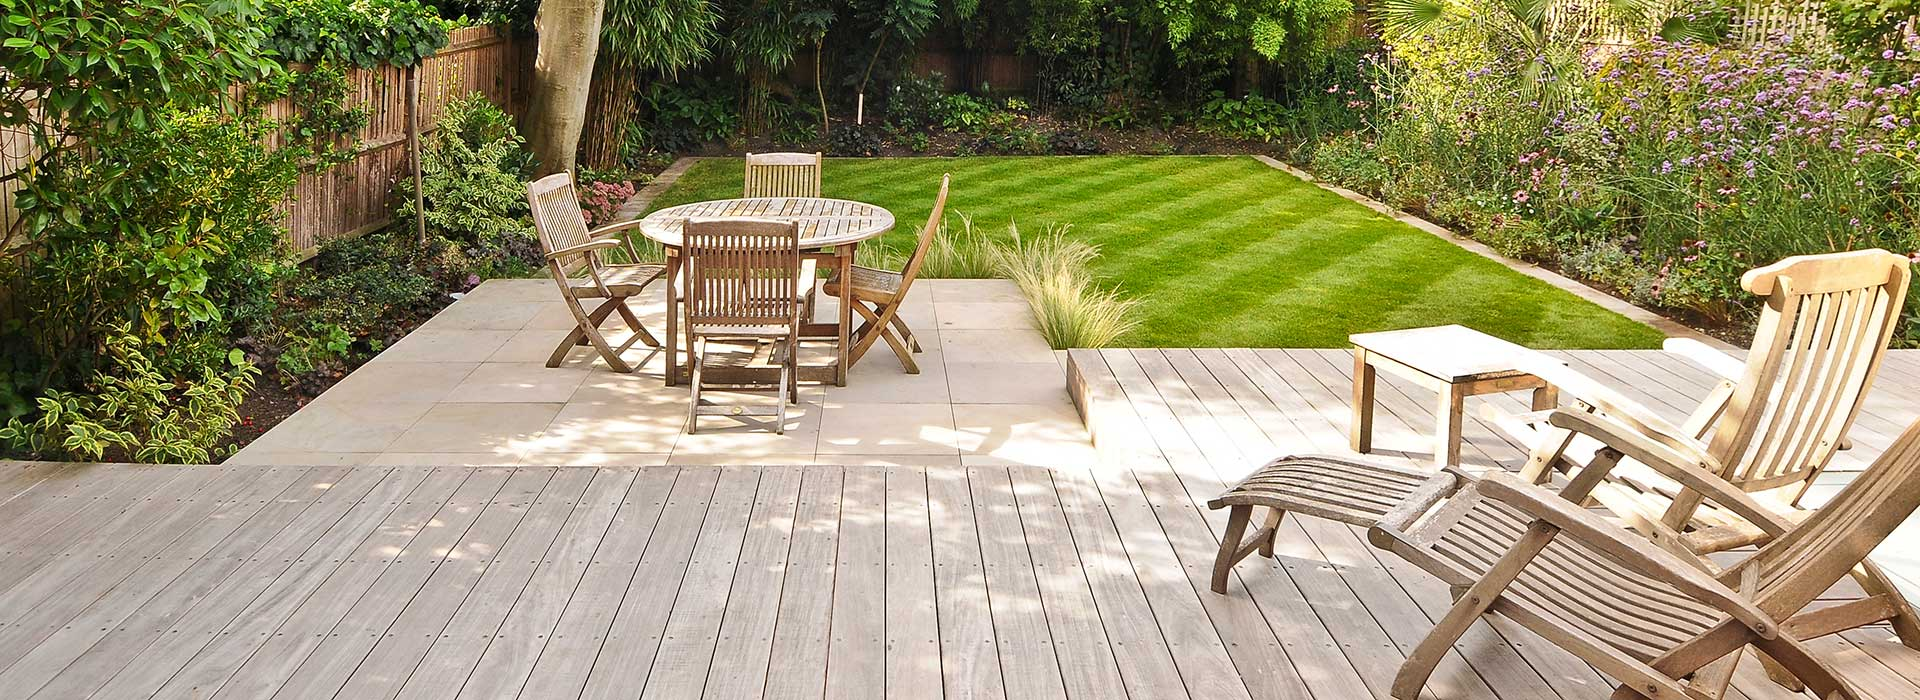 garden design in london 5